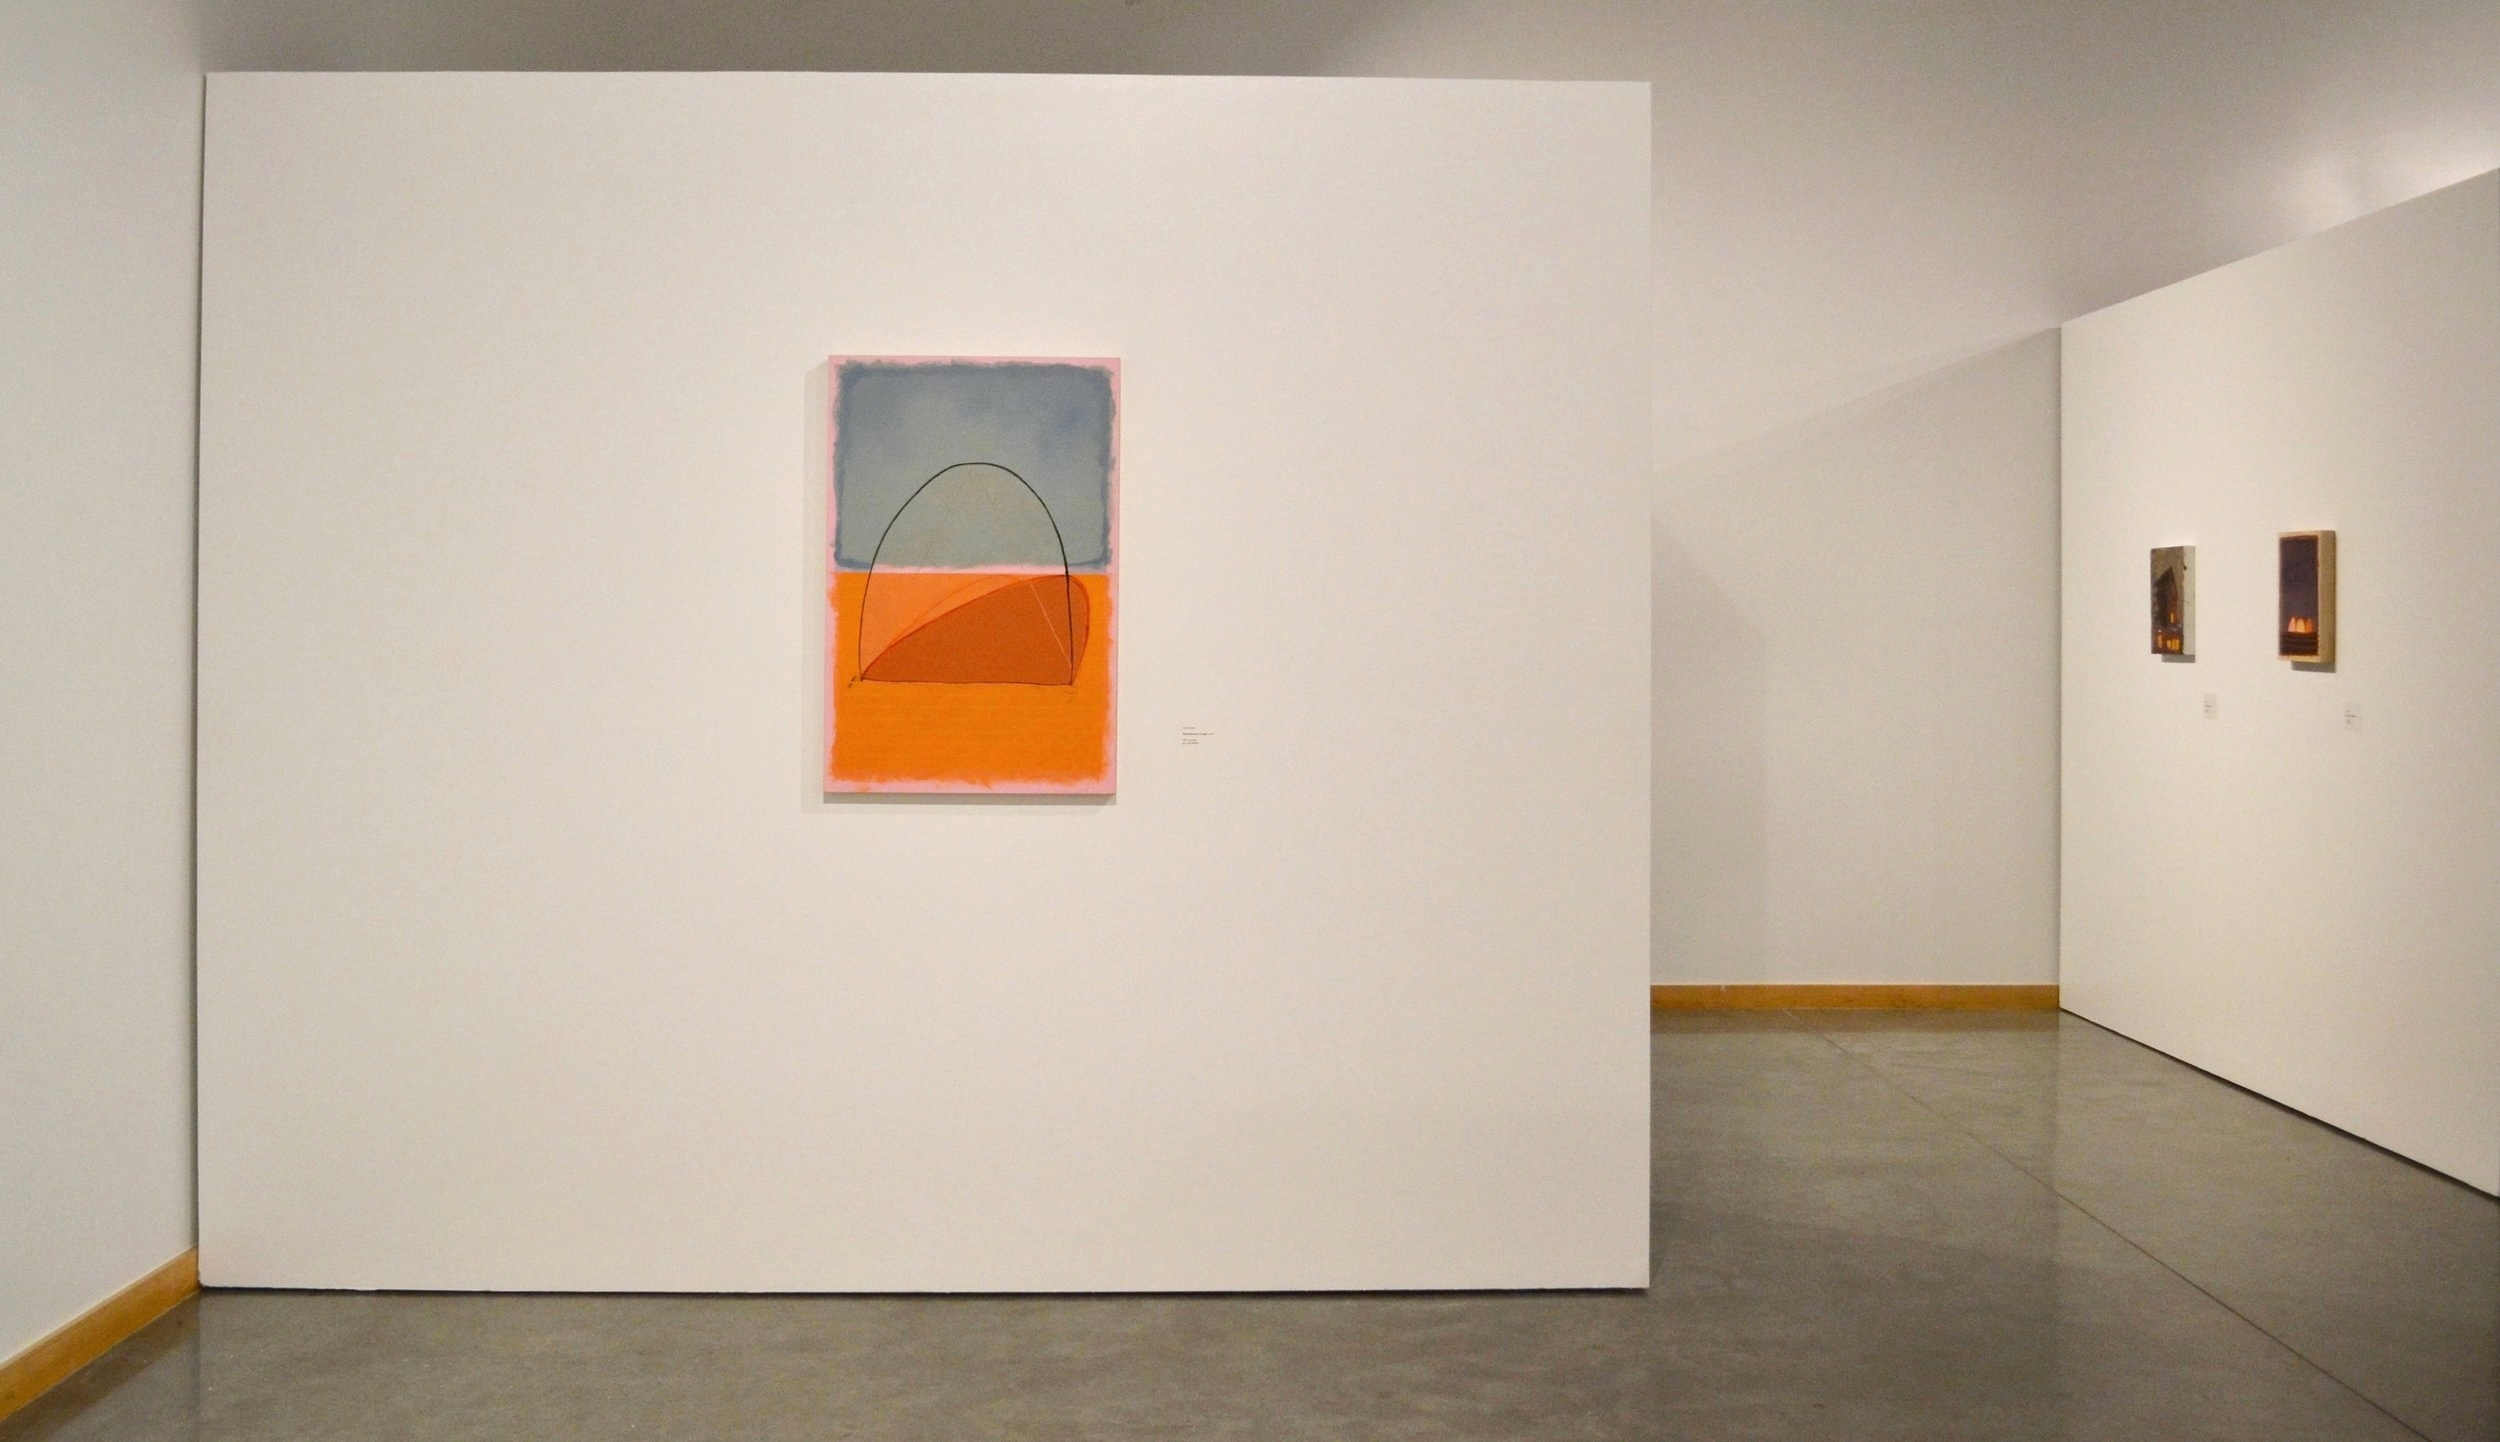 Dwelling: Paintings by Peter Ligon and Layla Luna (Haggerty Gallery)